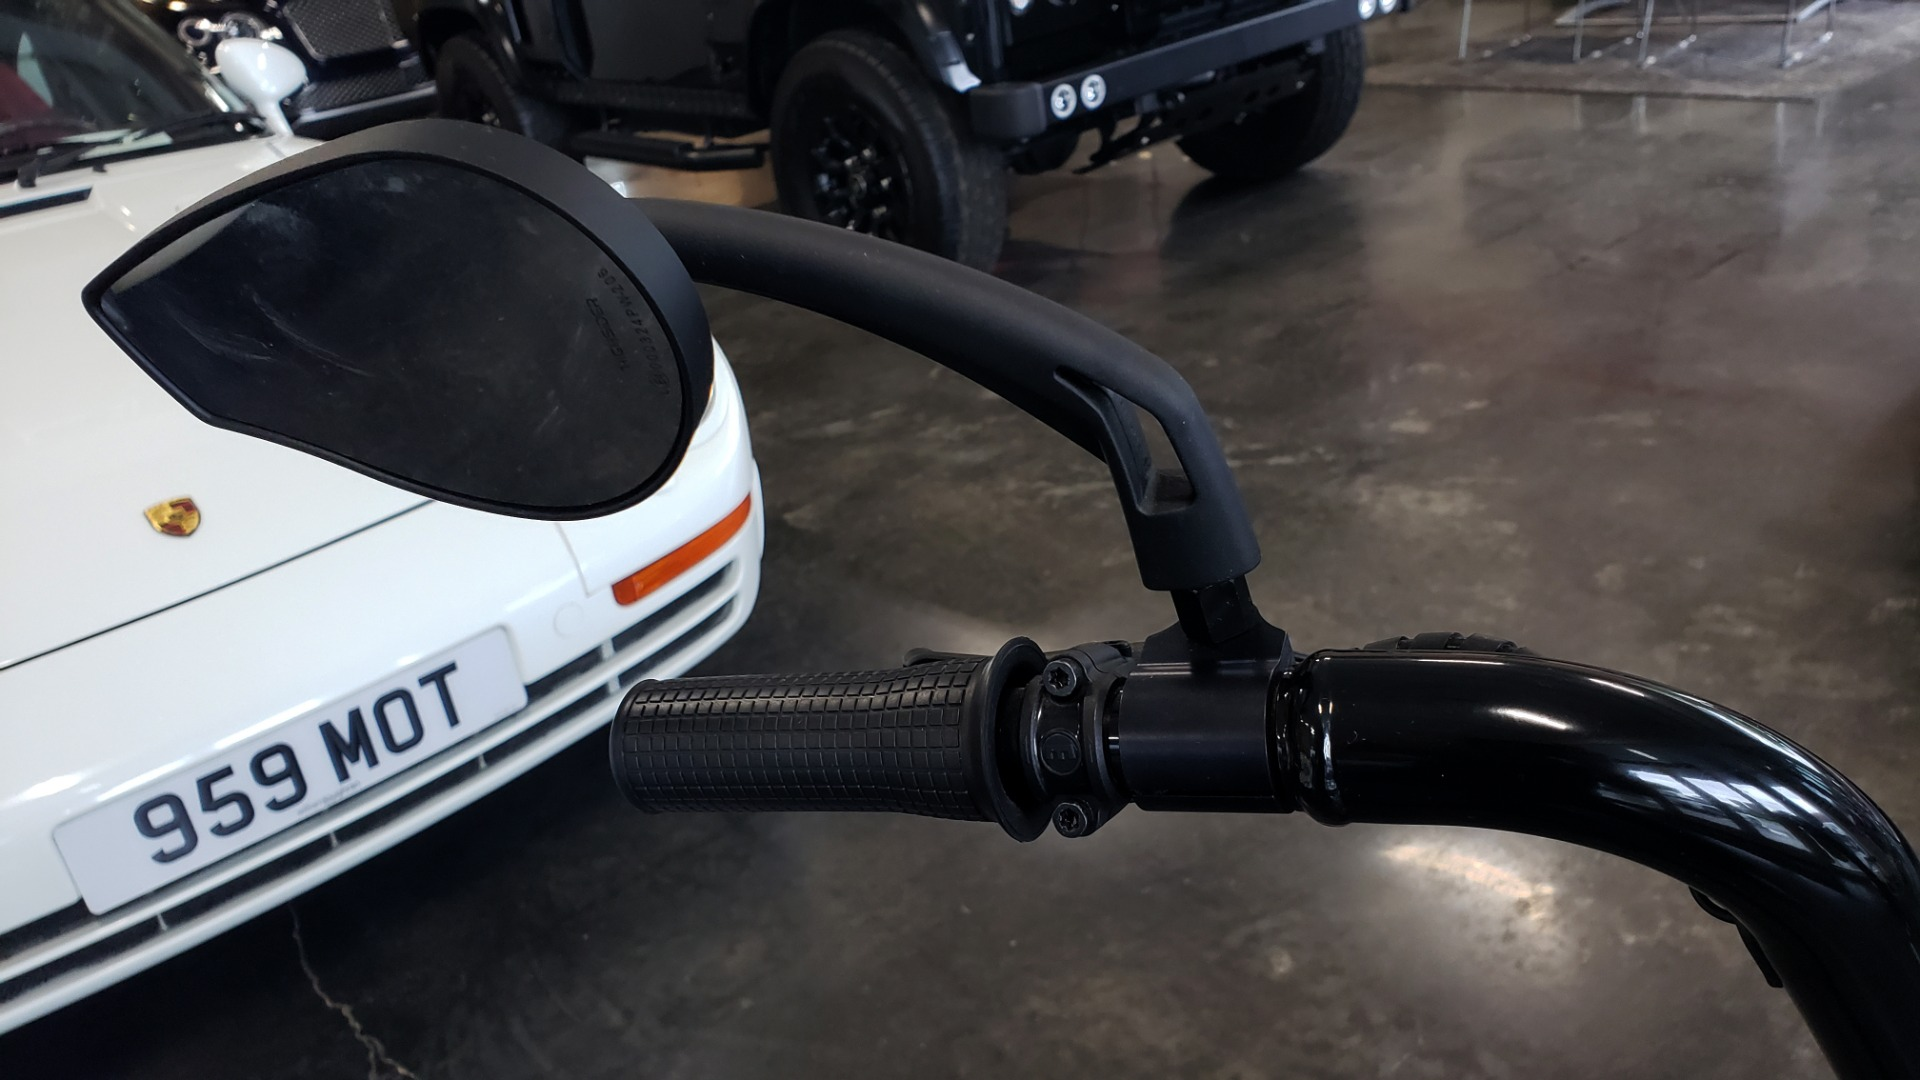 Used 2018 Scrooser ELECTRIC SCOOTER SELF BALANCED / 15.5 MPH / 34MI RANGE - CHOOSE YOUR COLOR for sale Sold at Formula Imports in Charlotte NC 28227 15